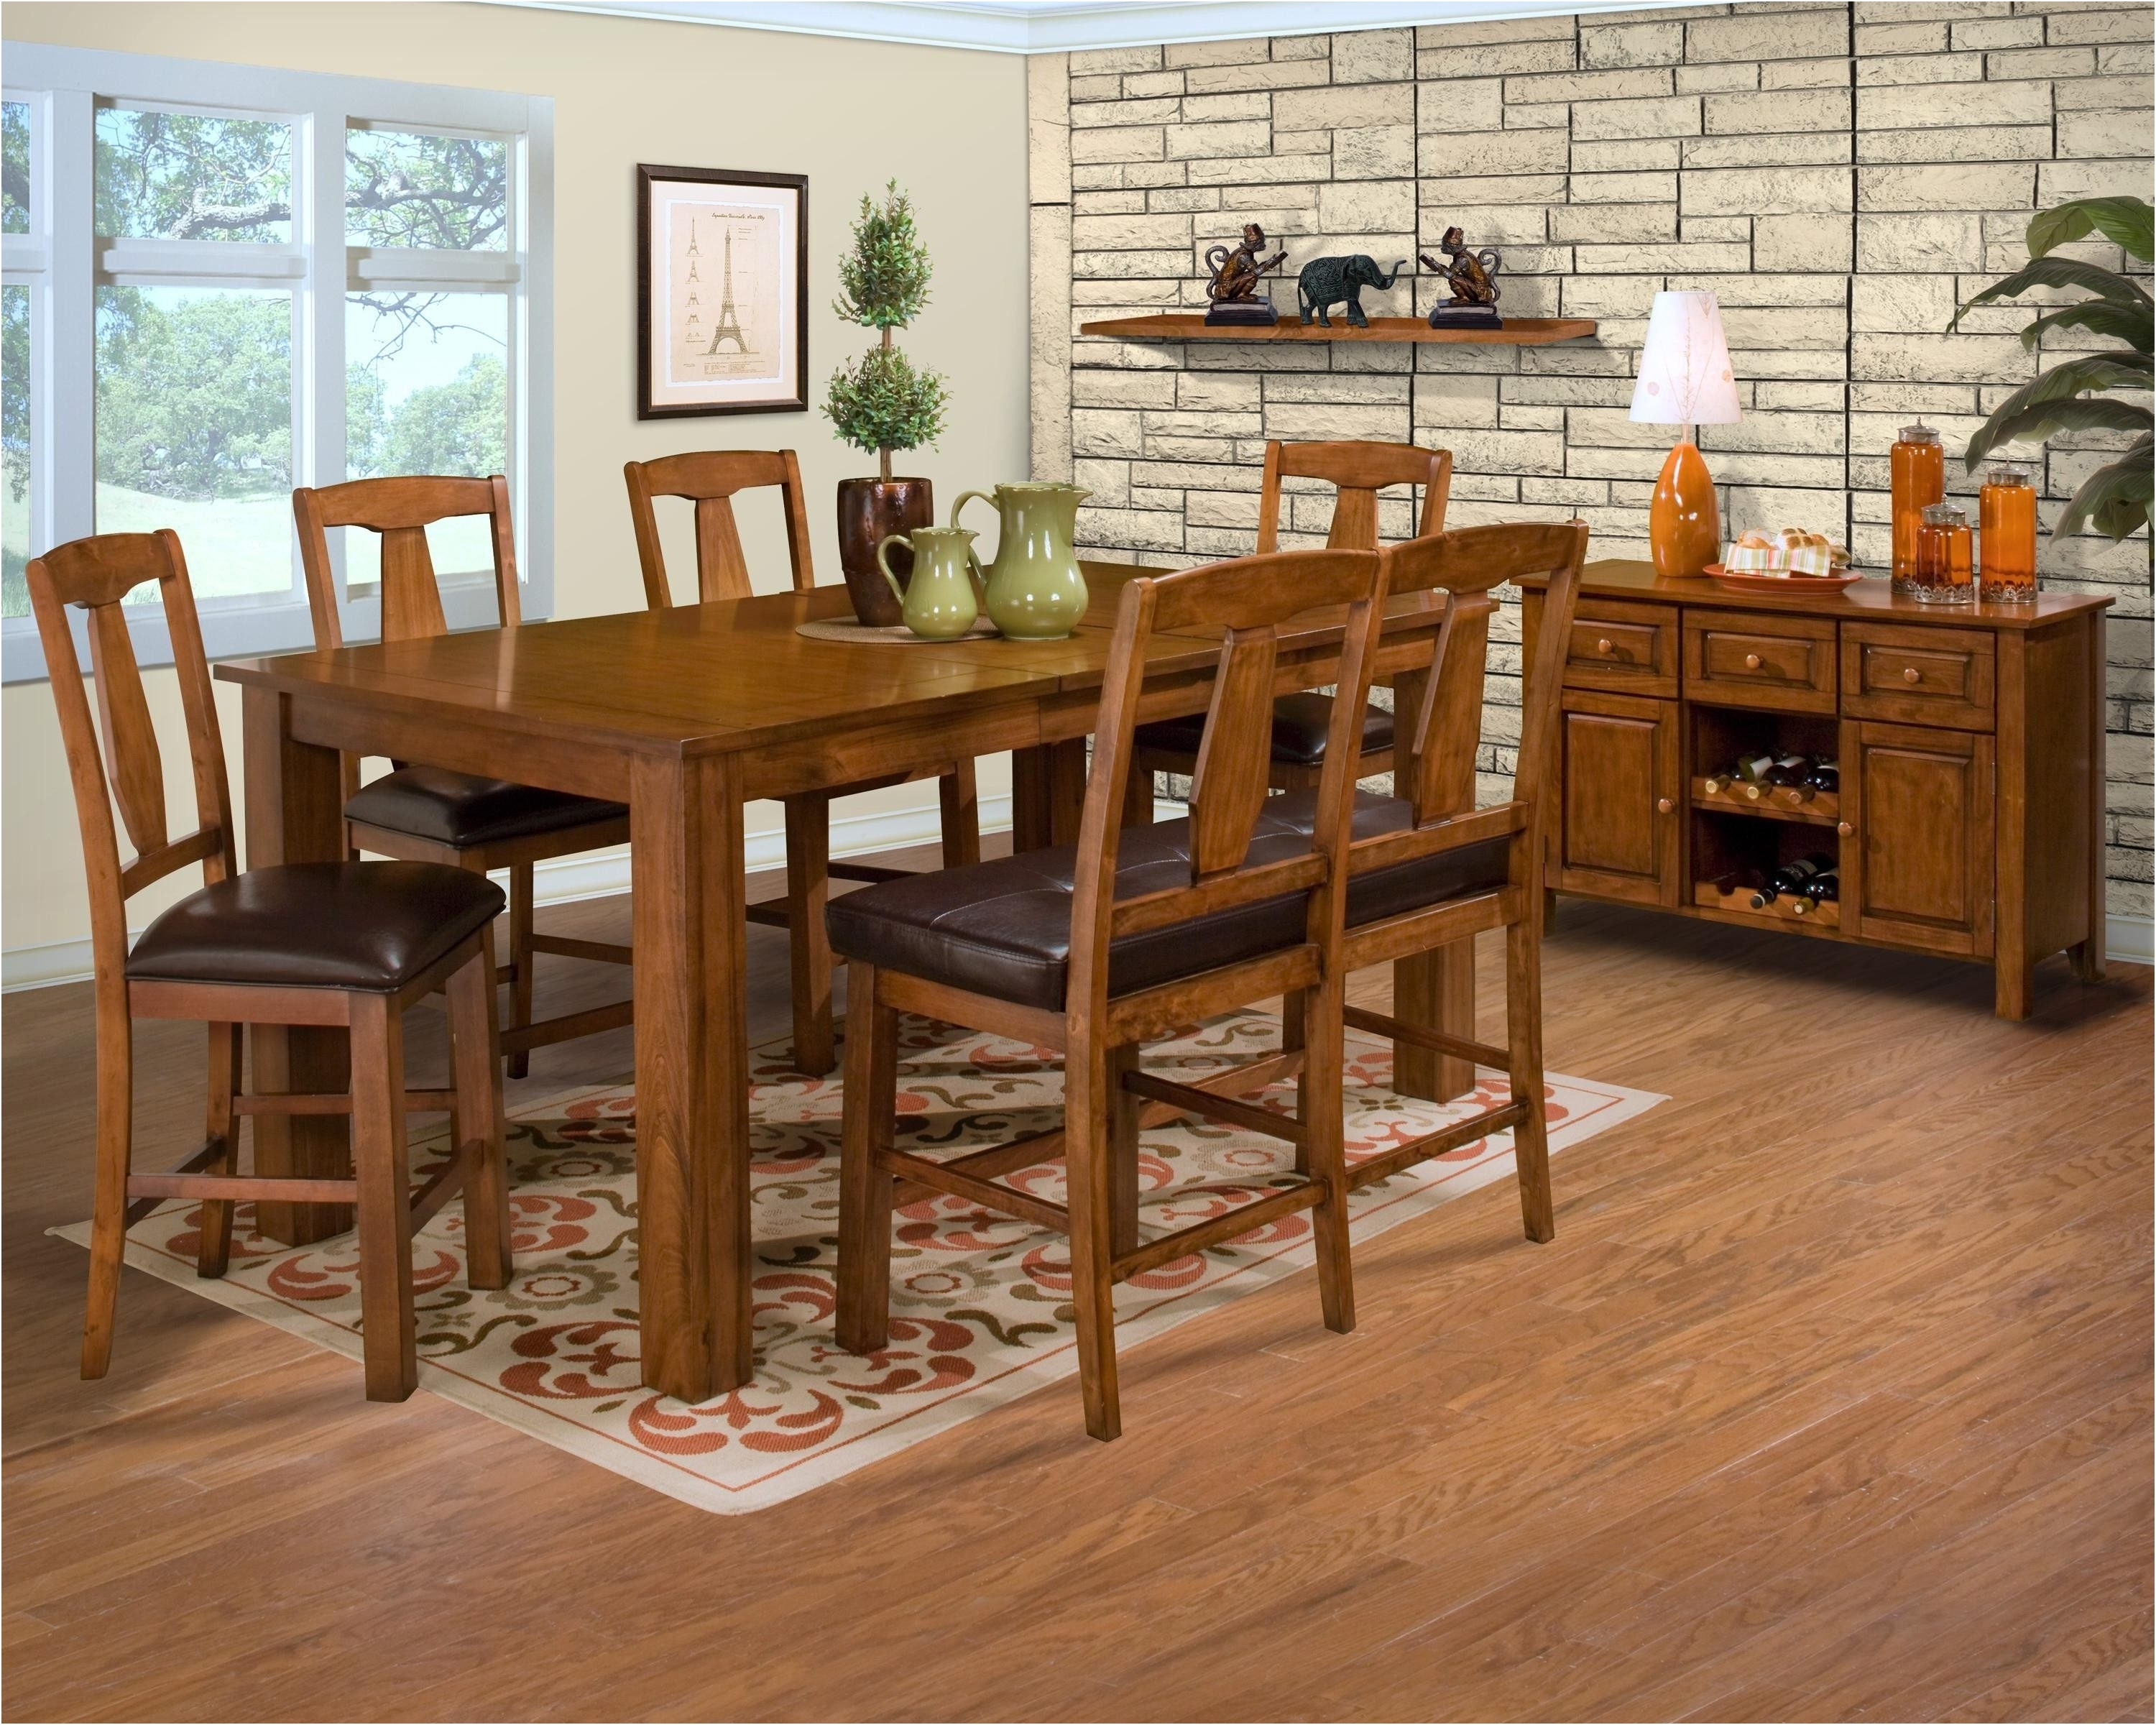 Parquet Dining Chairs With Famous Parquet Flooring For Sale Johannesburg Images Unusual Dining Chairs (View 18 of 20)